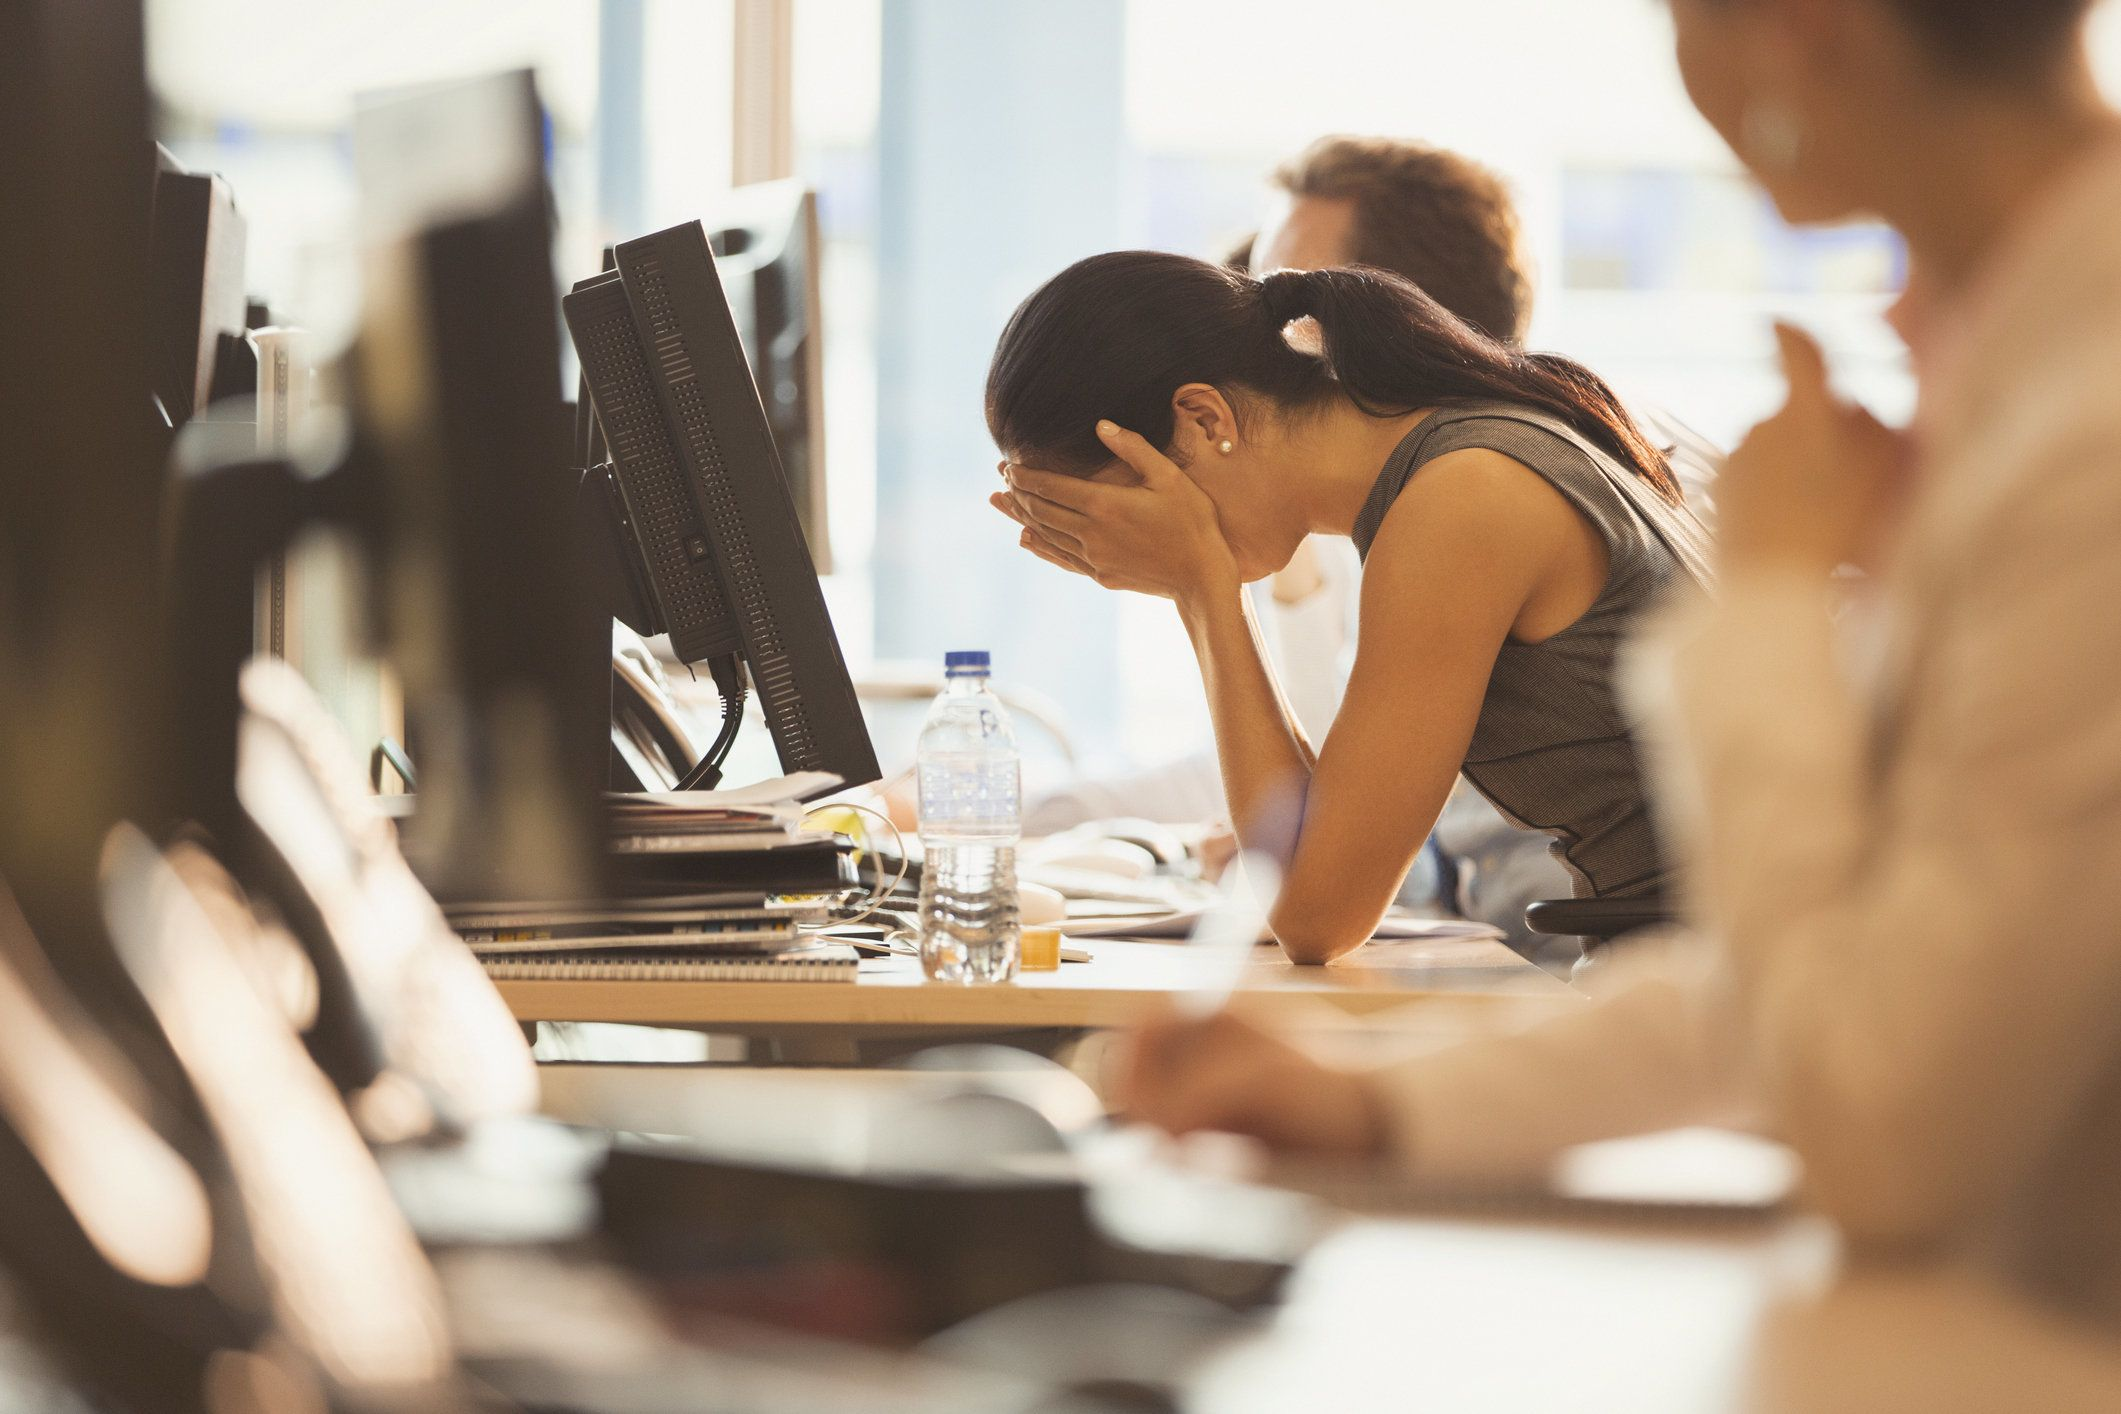 5 Careers That Can Majorly Wreck Your